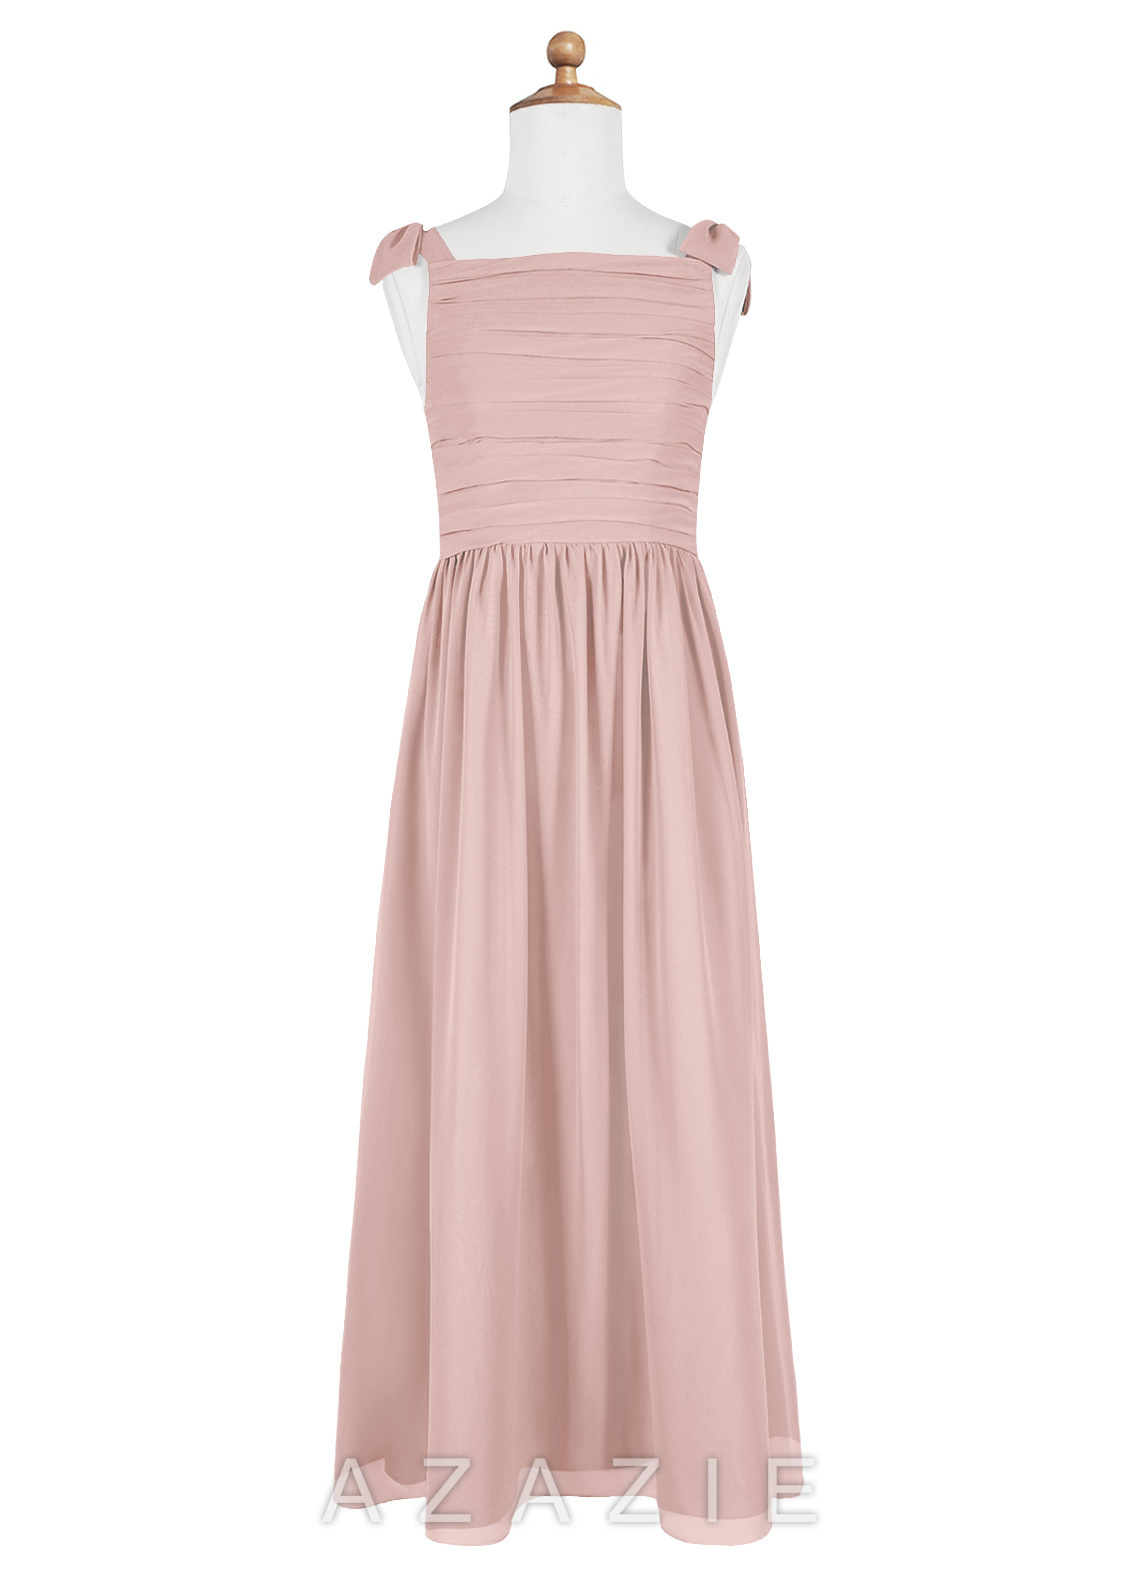 Azazie Fiona JBD Junior Bridesmaid Dress